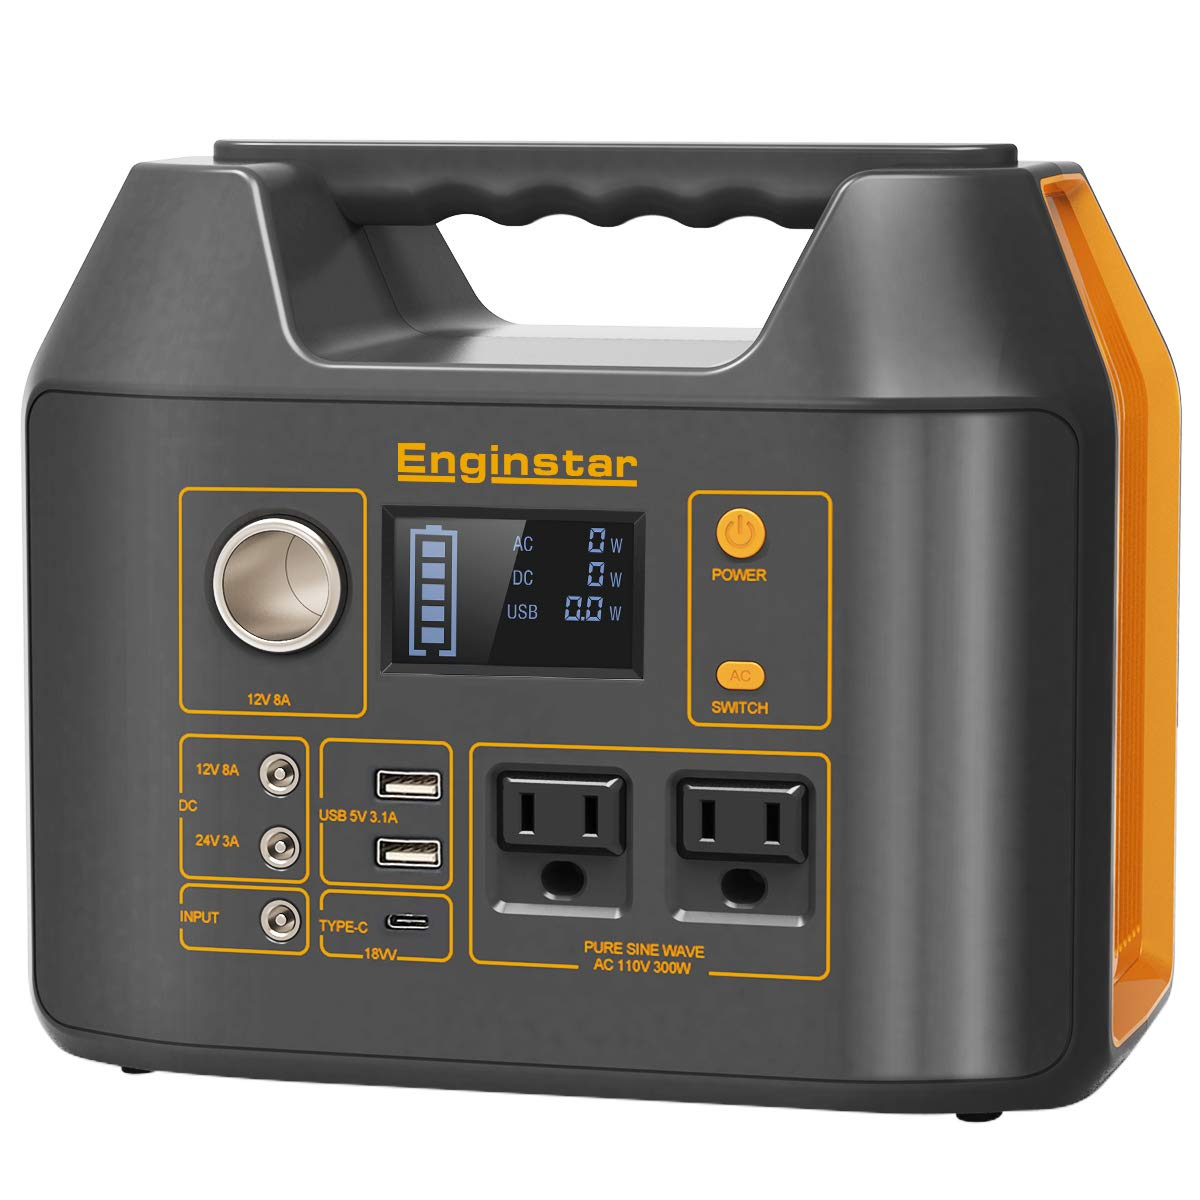 Enginstar Portable Power Station 298Wh, Backup Camping Lithium Battery Pack, 110V 300W Outdoors Solar Generator Solar Panel Not Included for Laptops Cellphones Drones and More Electronics